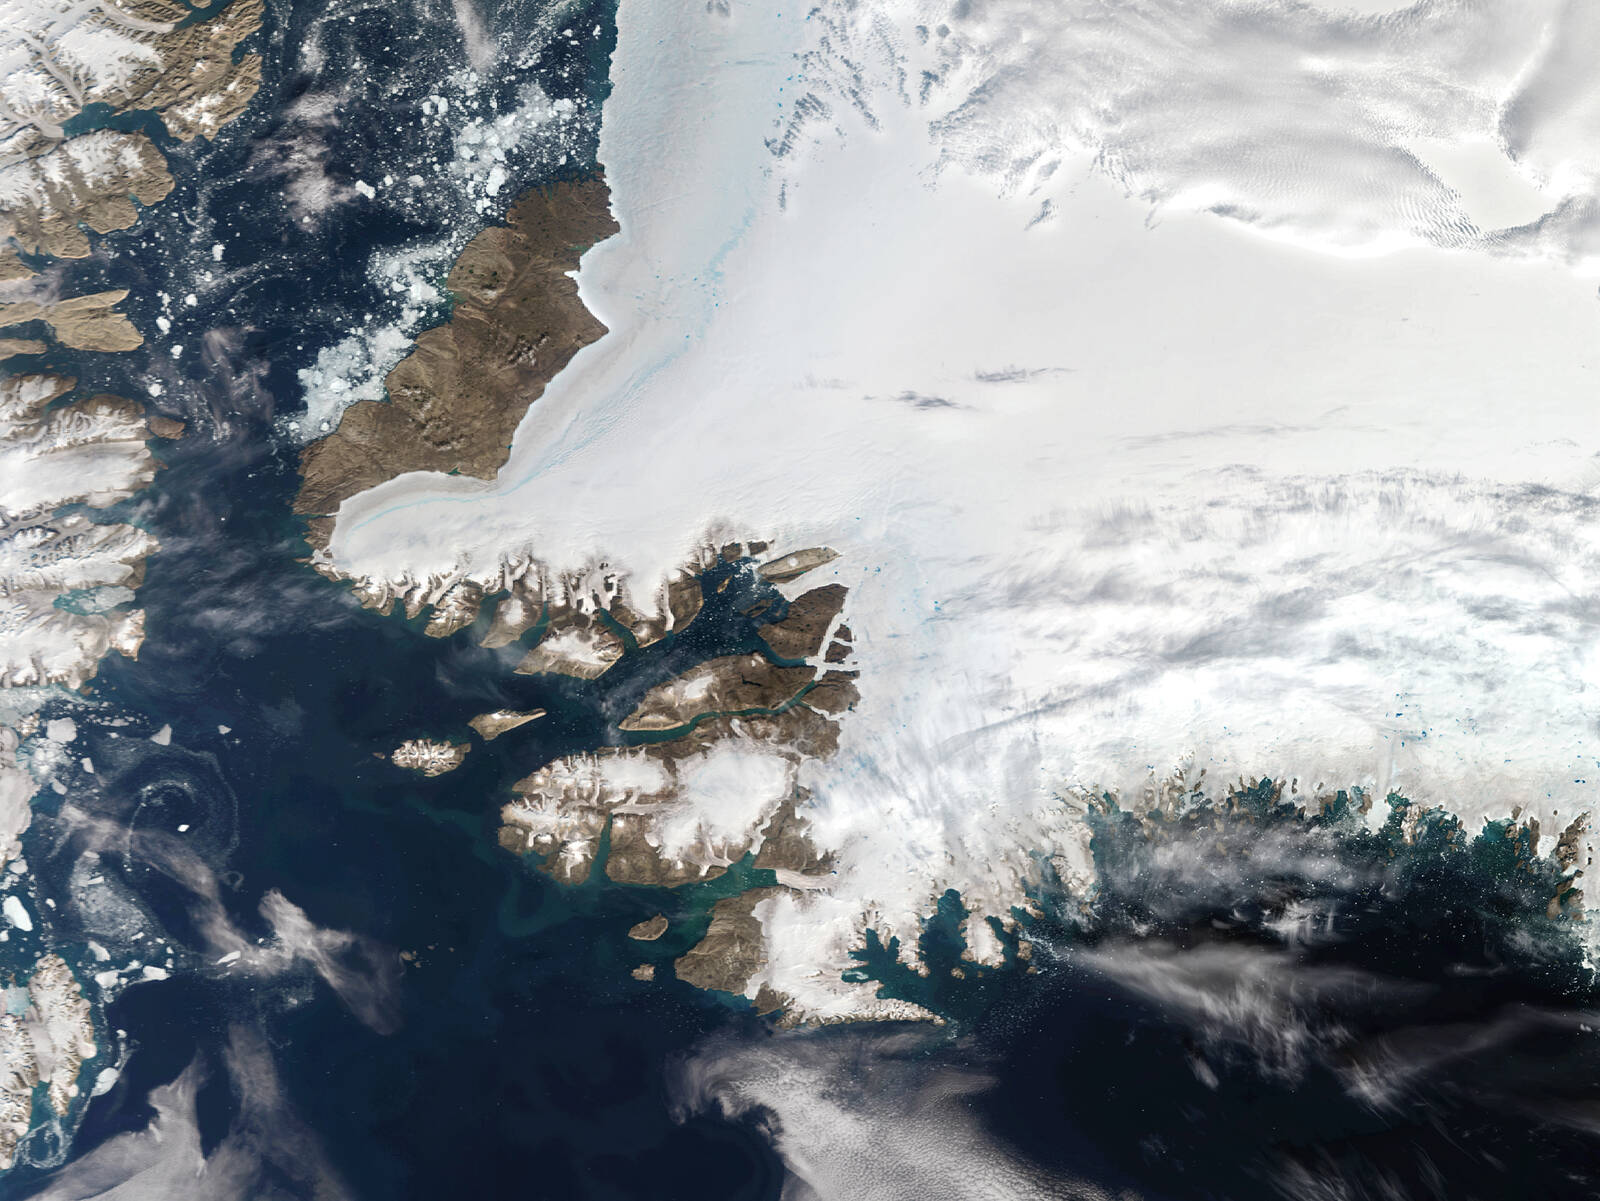 A satellite view of Northwestern Greenland in the Arctic Circle on Aug. 12, 2019 in Pituffik, Greenland. Credit: Orbital Horizon/Copernicus Sentinel Data 2019/Gallo Images via Getty Images)